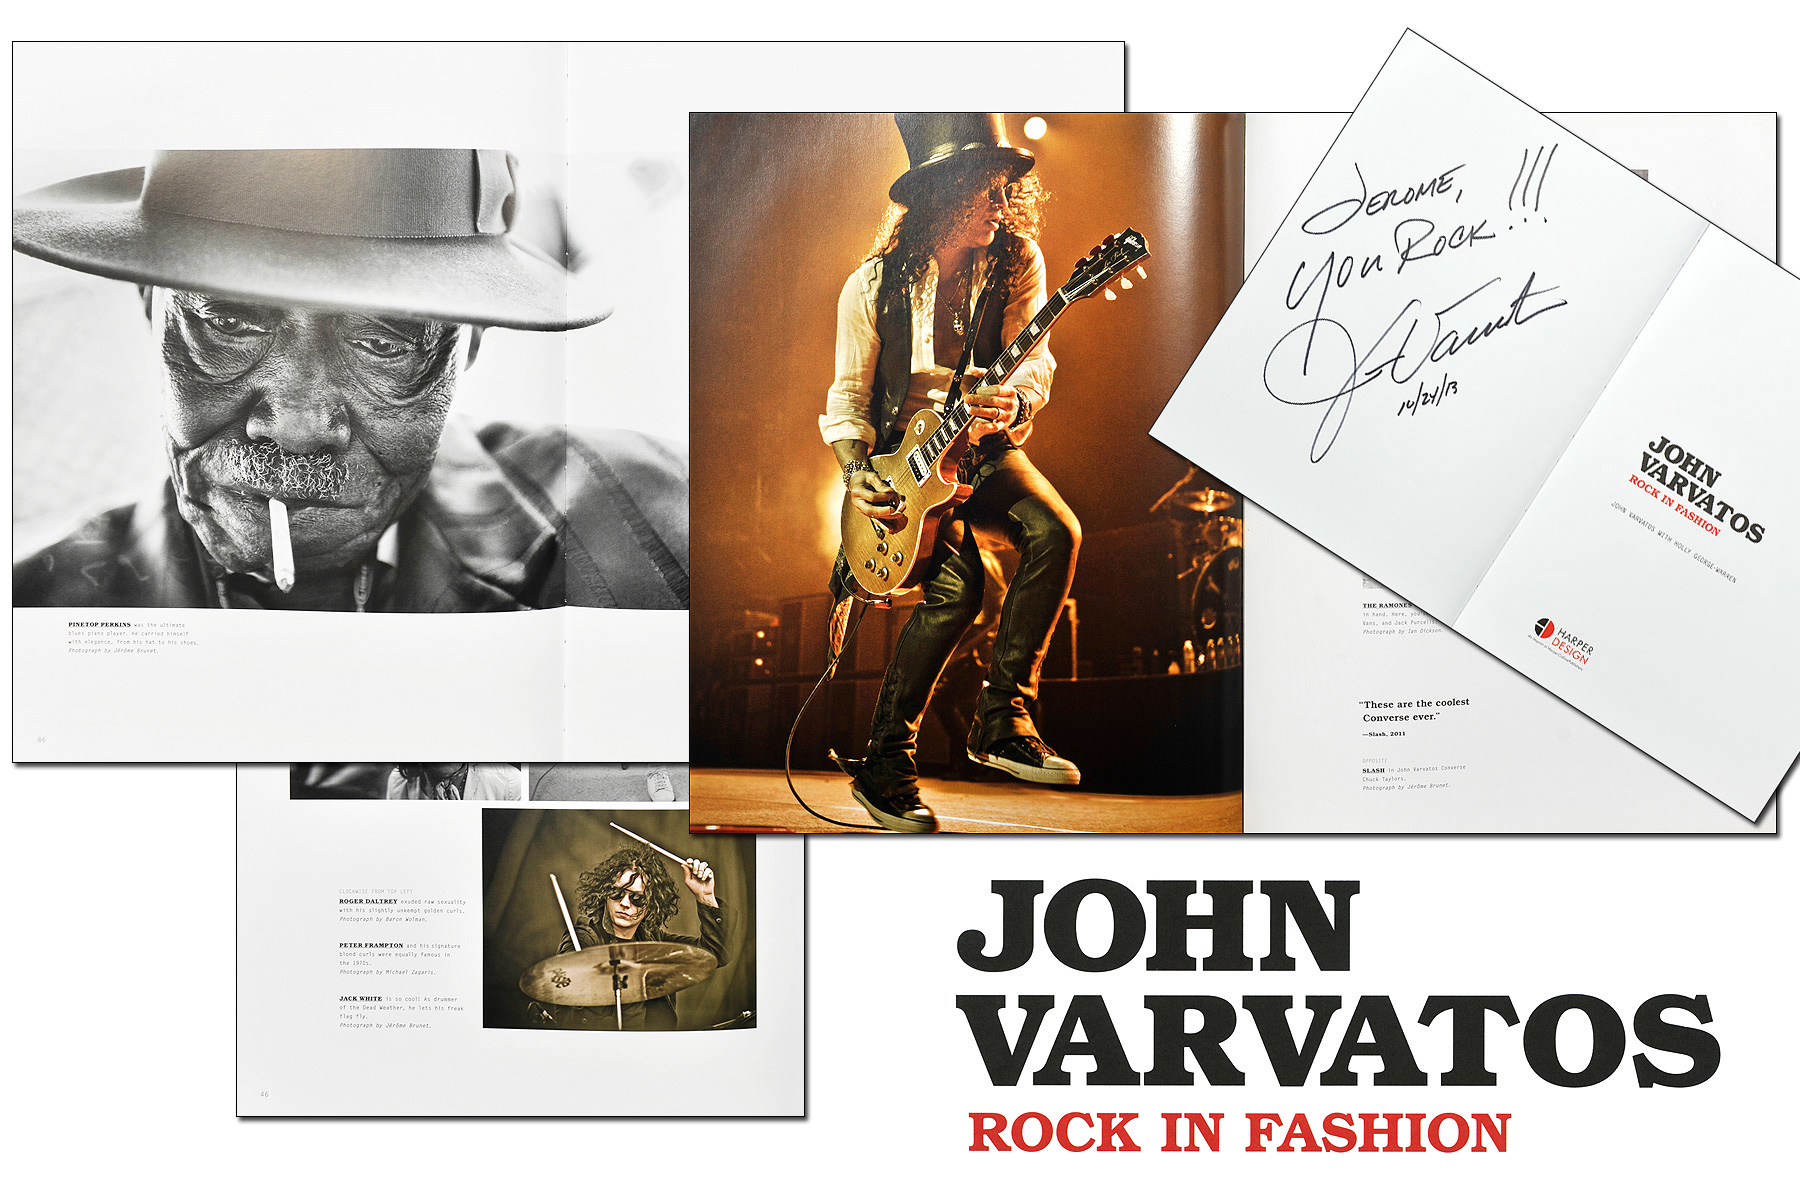 John_Varvatos_Rock_in_Fashion_Jerome_Brunet